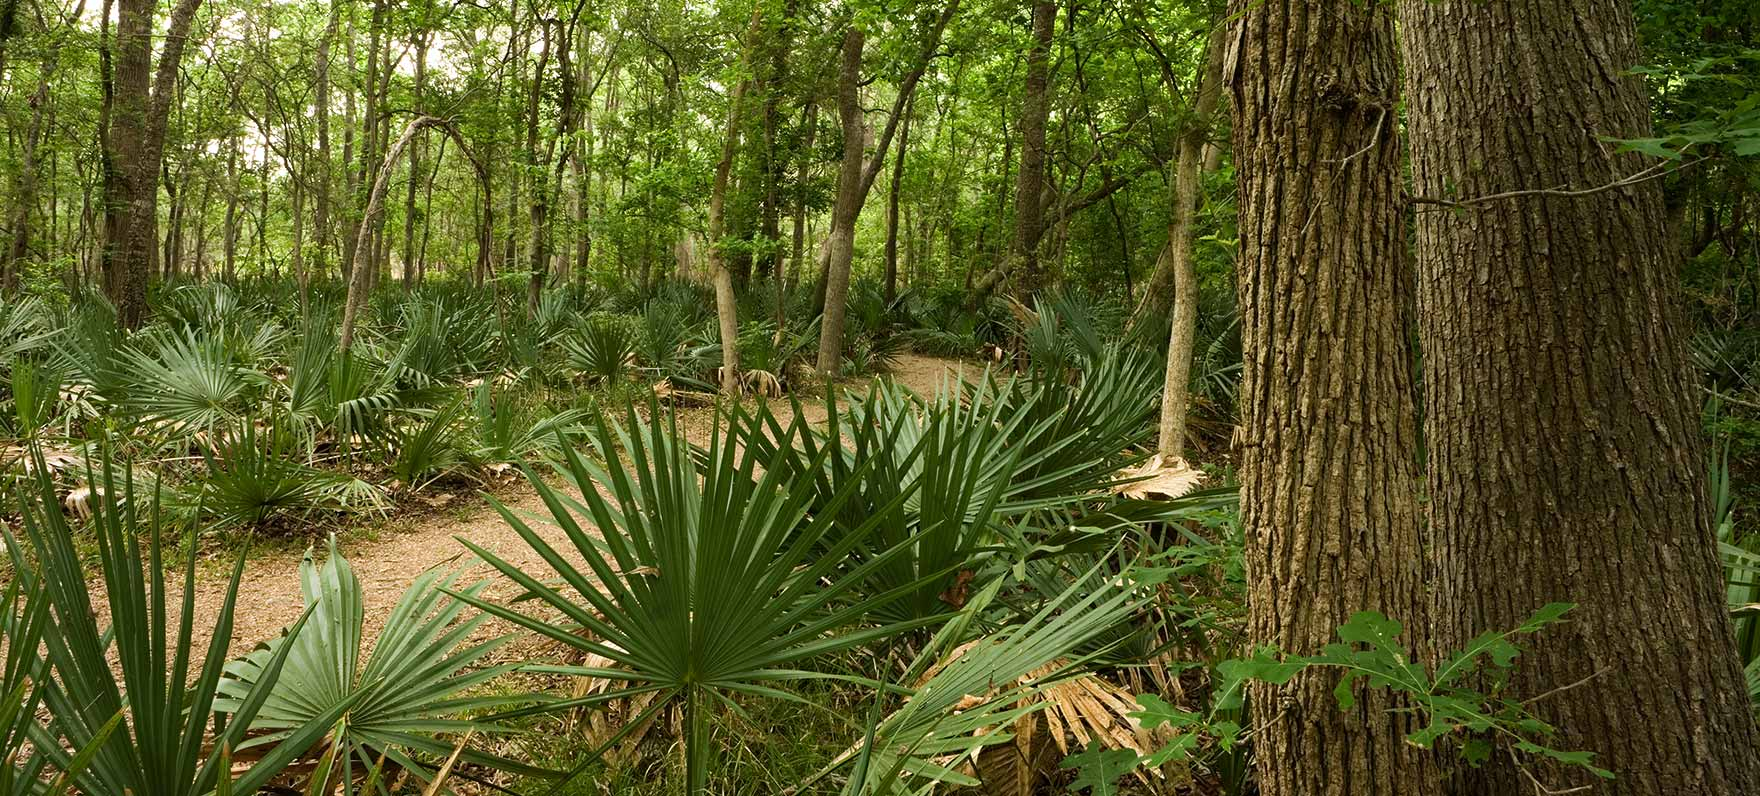 Dwarf palmettos and other beautiful tropical vegetation make this a botanical wonderland.